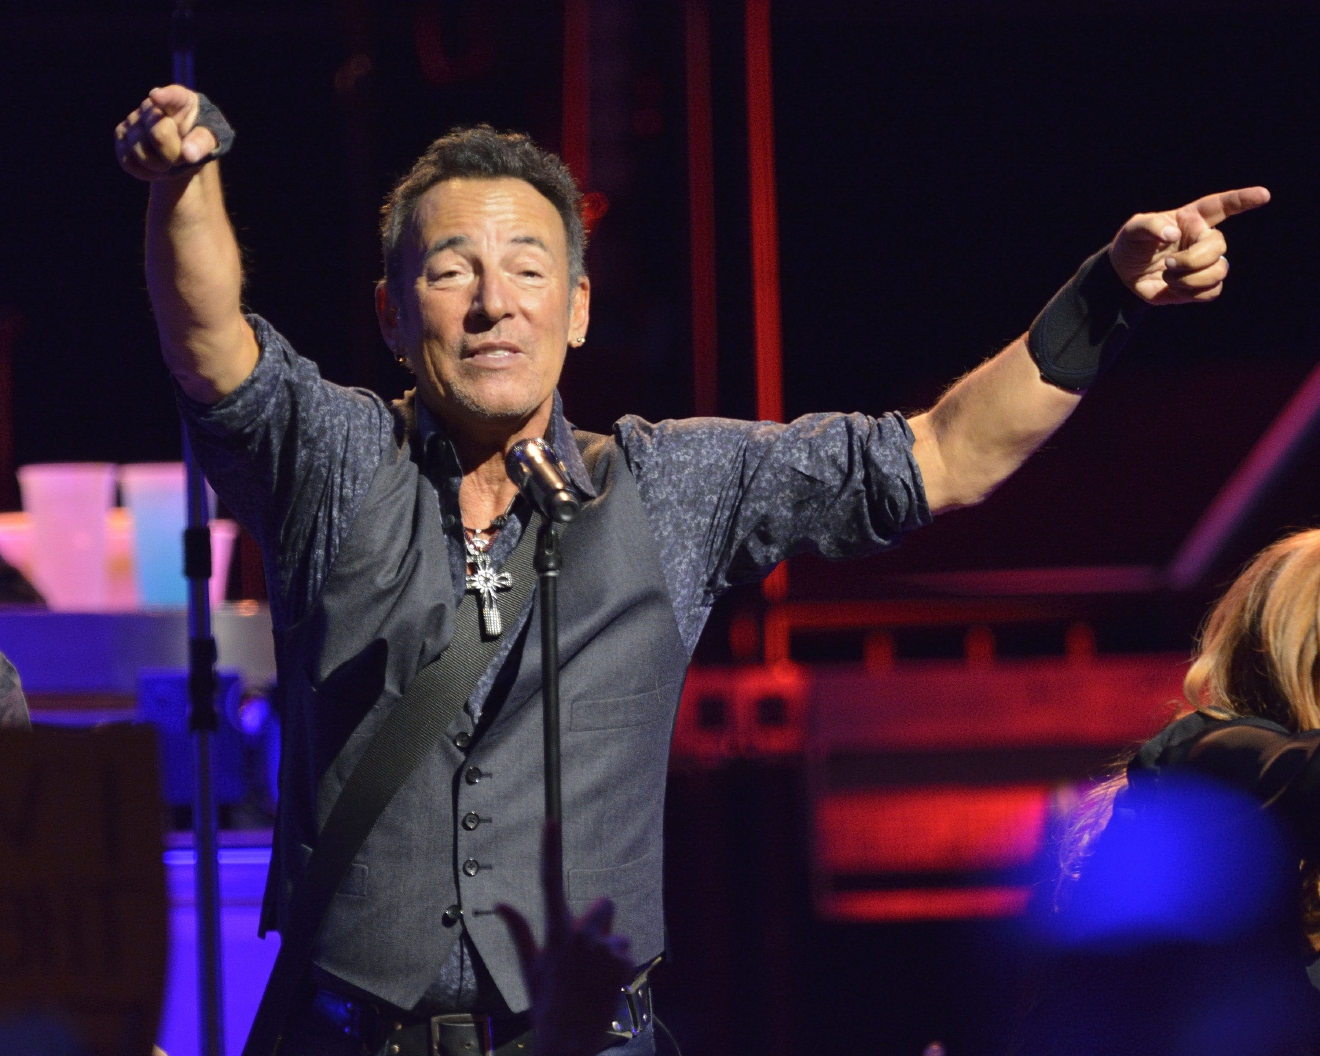 Bruce Springsteen and the E Street Band perform at the Air Canada Centre during The River Tour.  Featuring: Bruce Springsteen Where: Toronto, Canada When: 02 Feb 2016 Credit: Dominic Chan/WENN.com